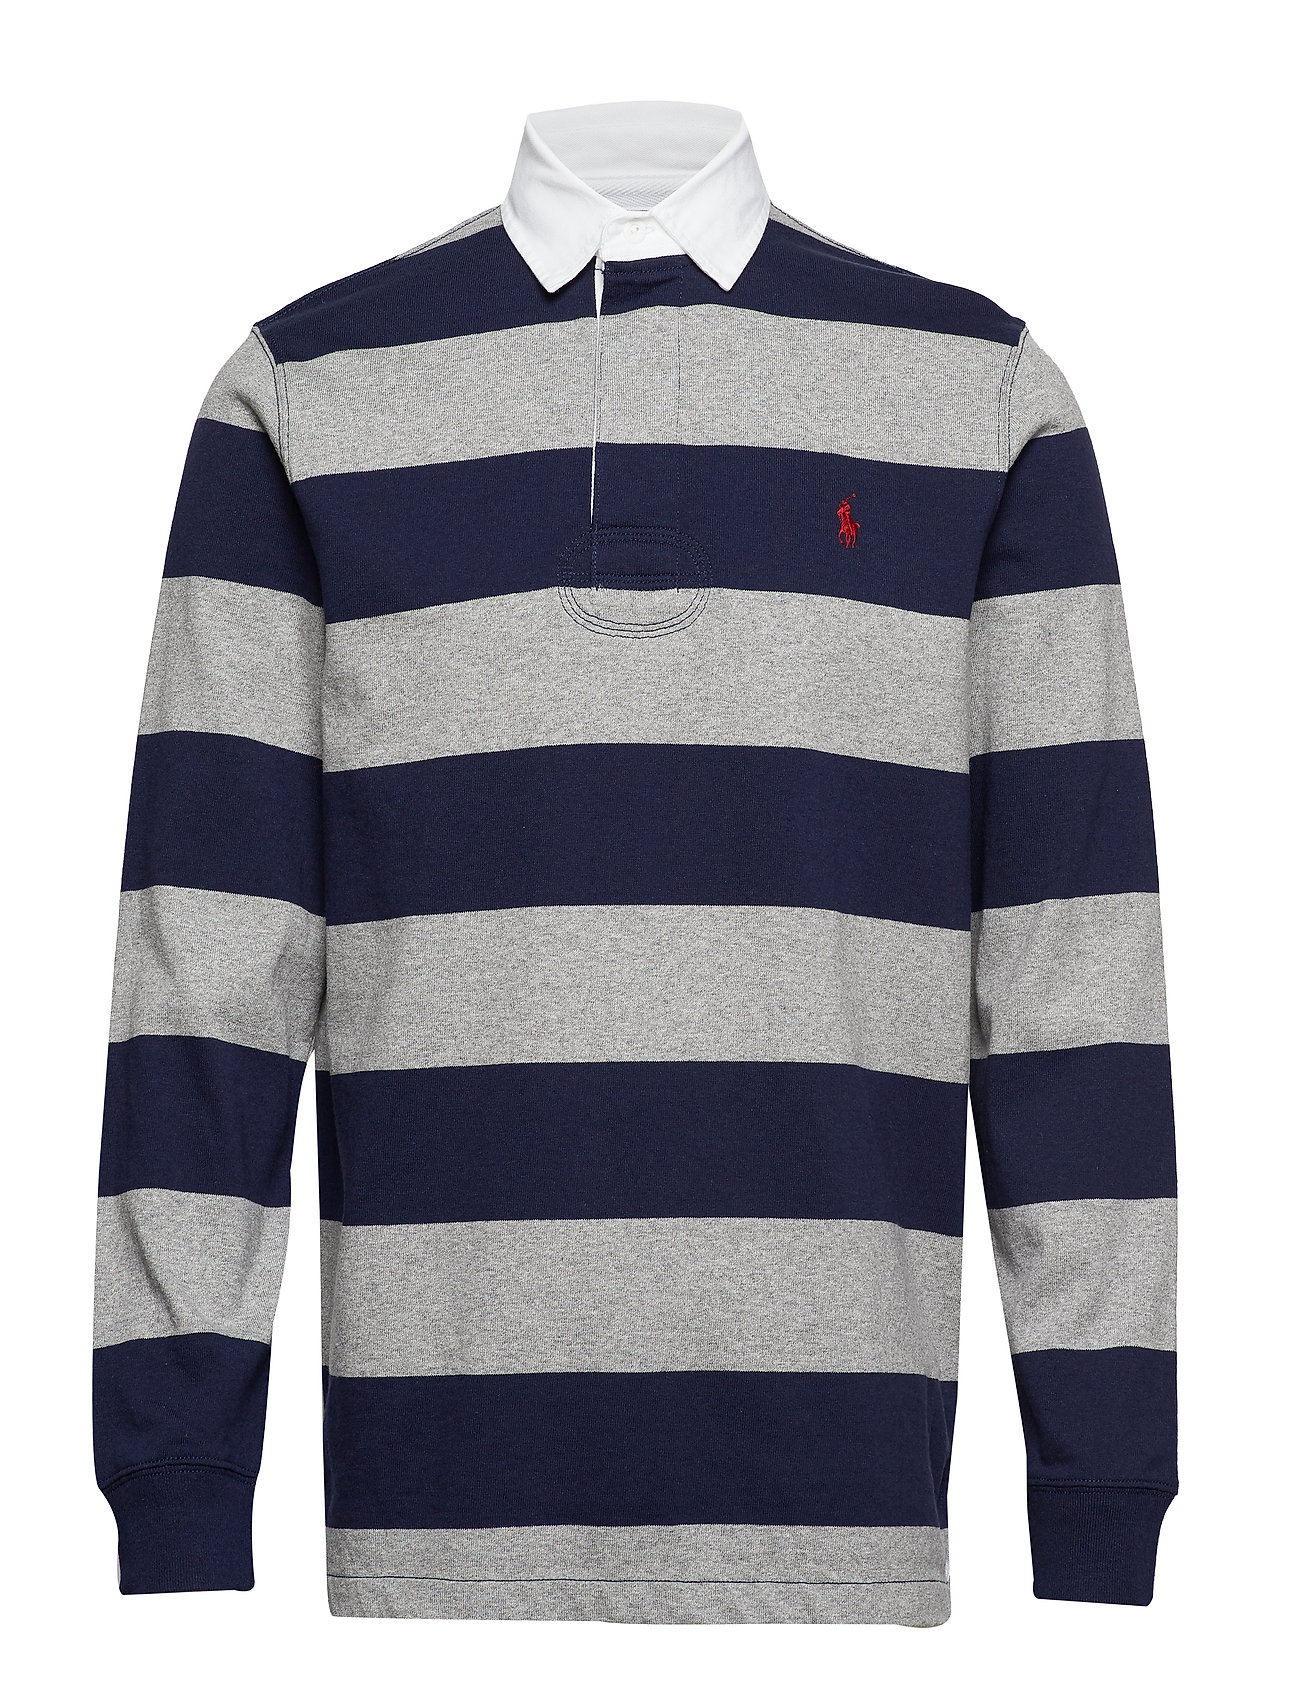 Polo Ralph Lauren The Iconic Rugby Shirt - LEAGUE HEATHER/FR